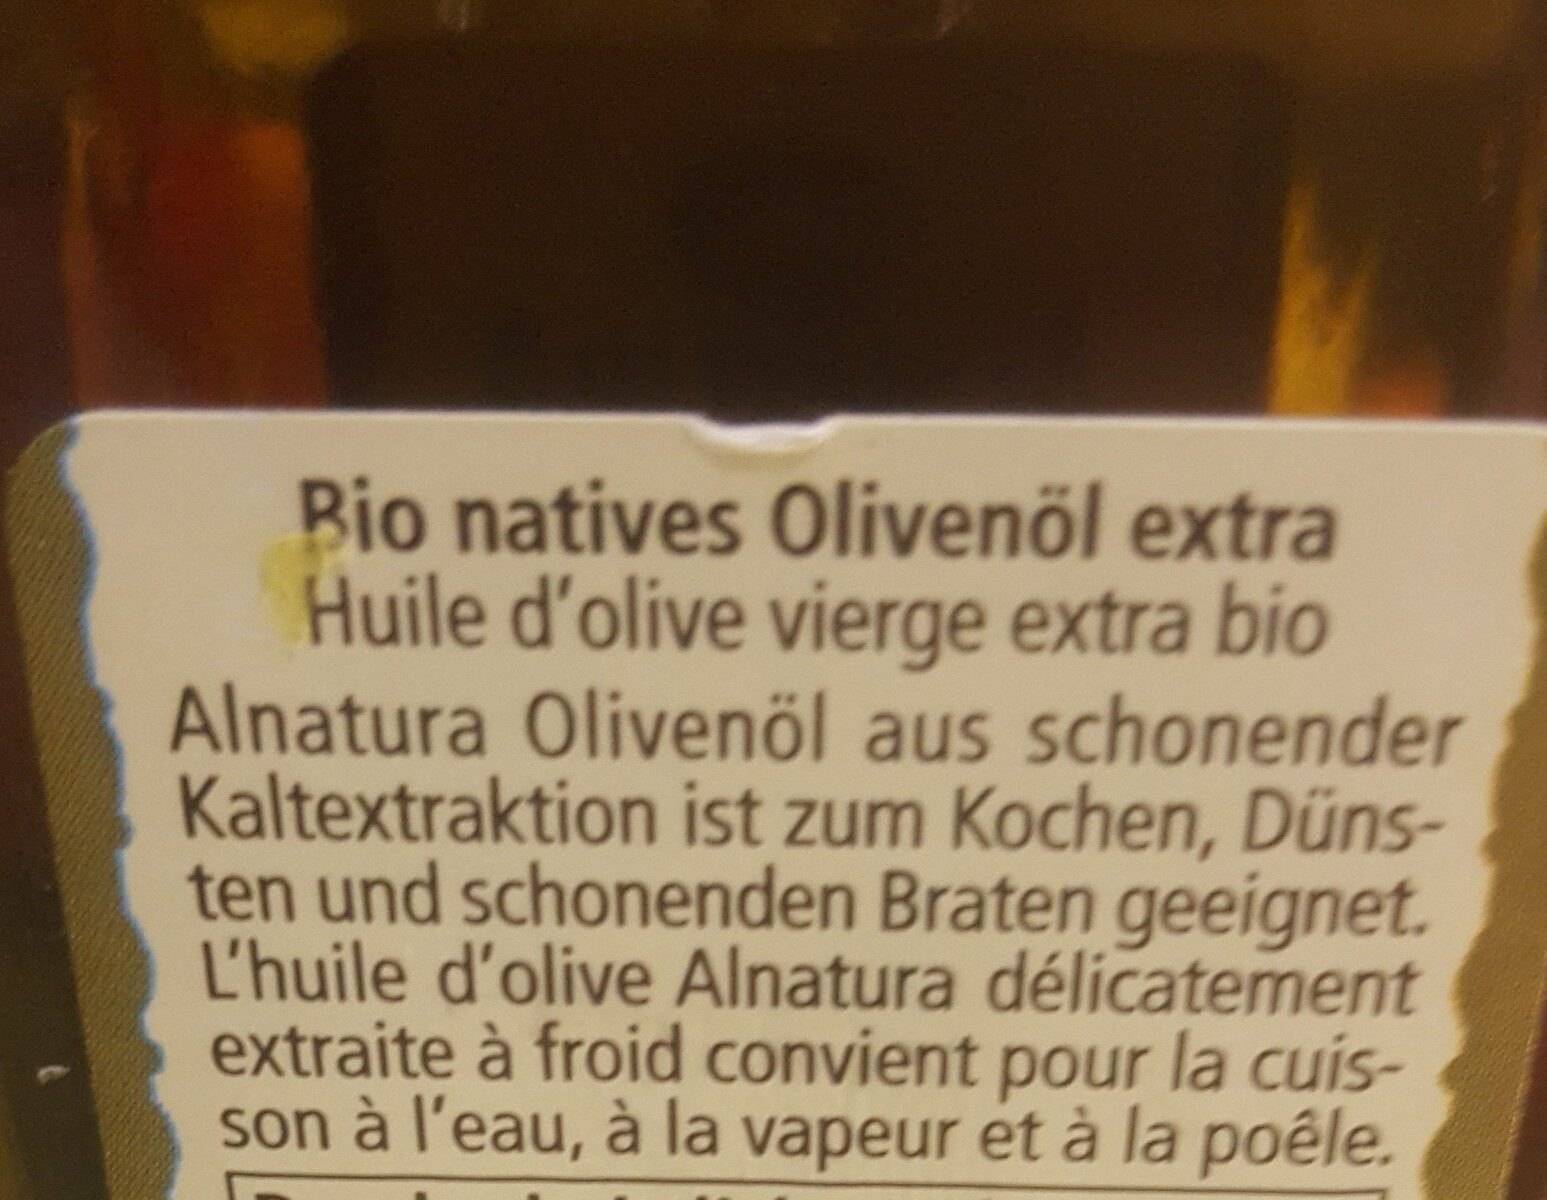 Natives olivenöl extra - 成分 - de